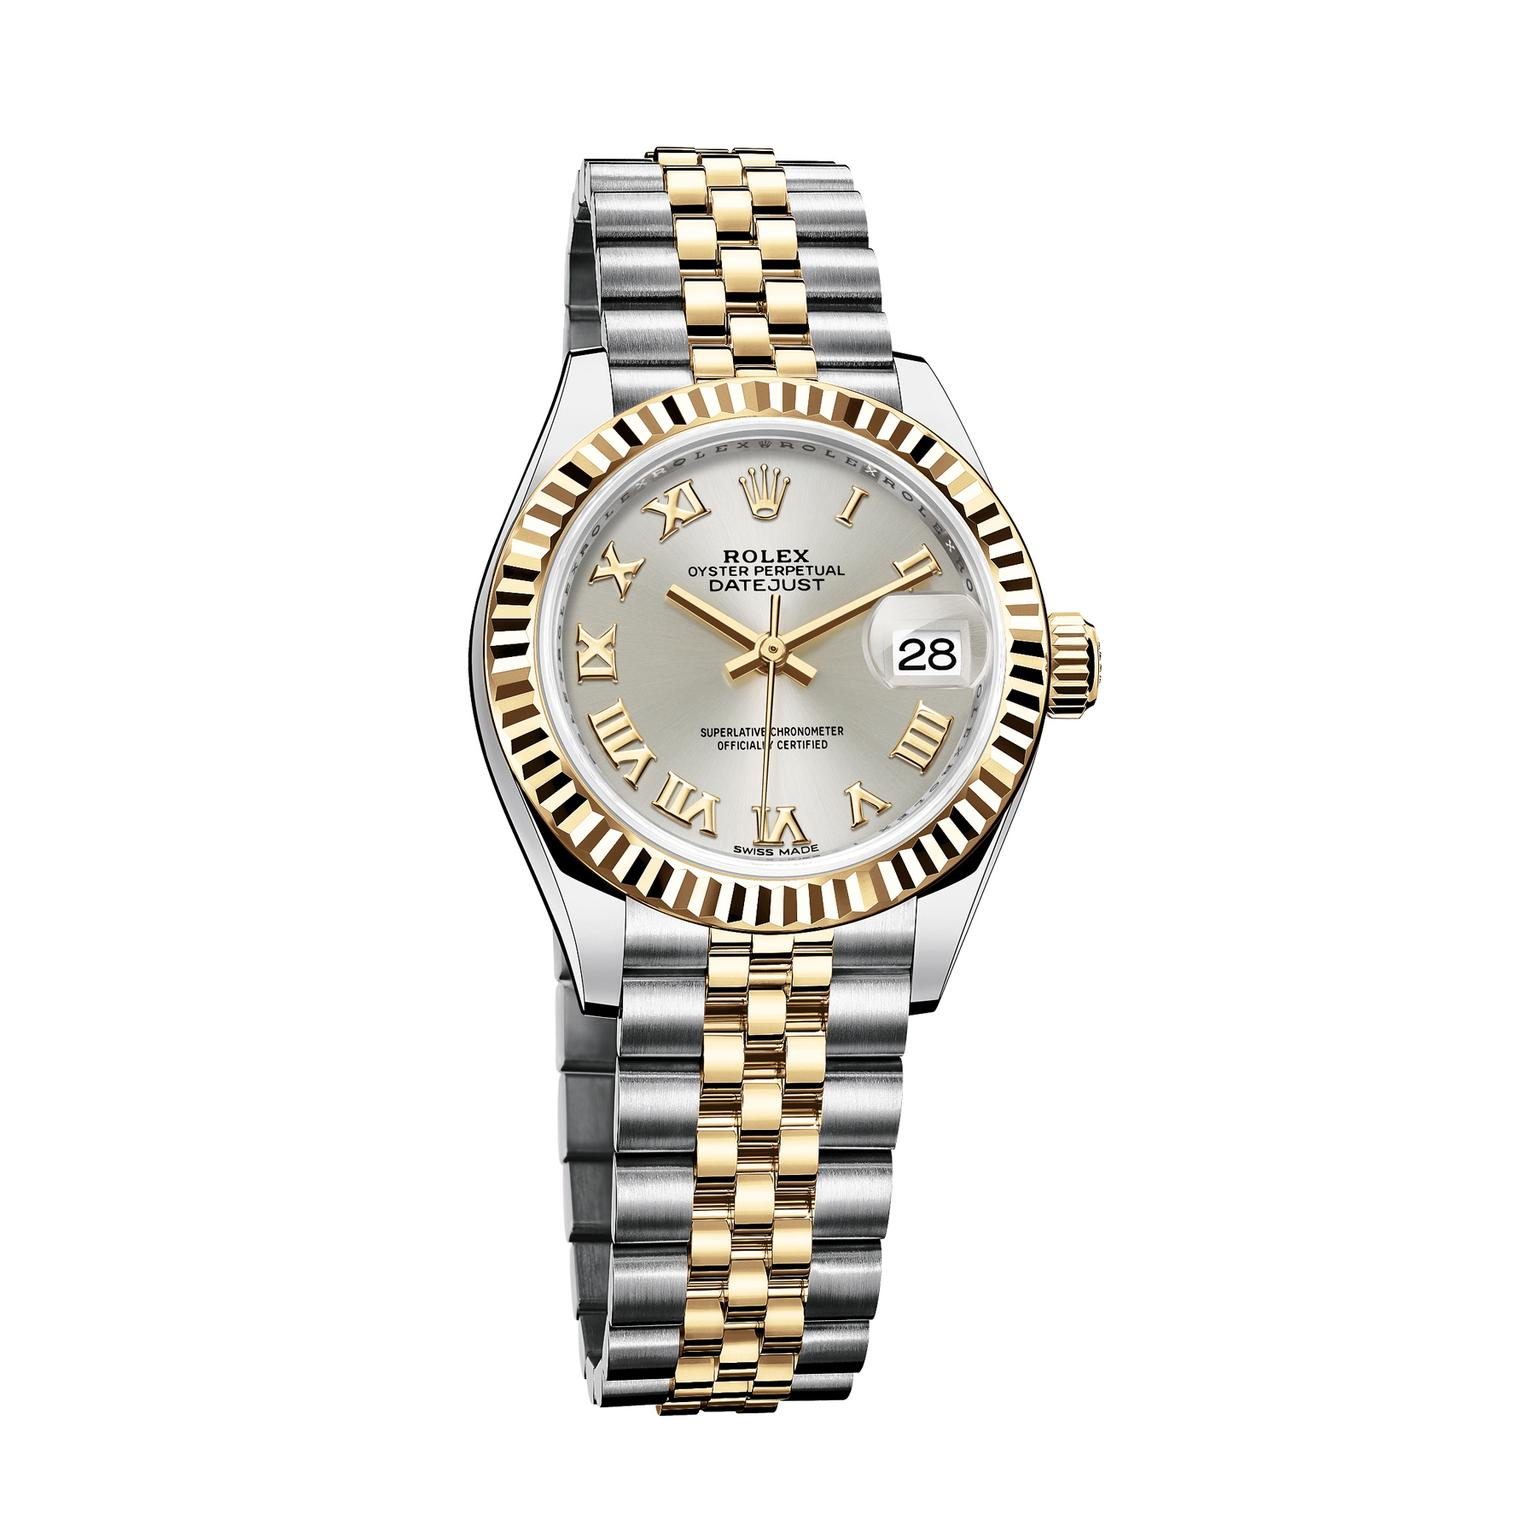 Rolex Lady Datejust 28mm watch Rolesor